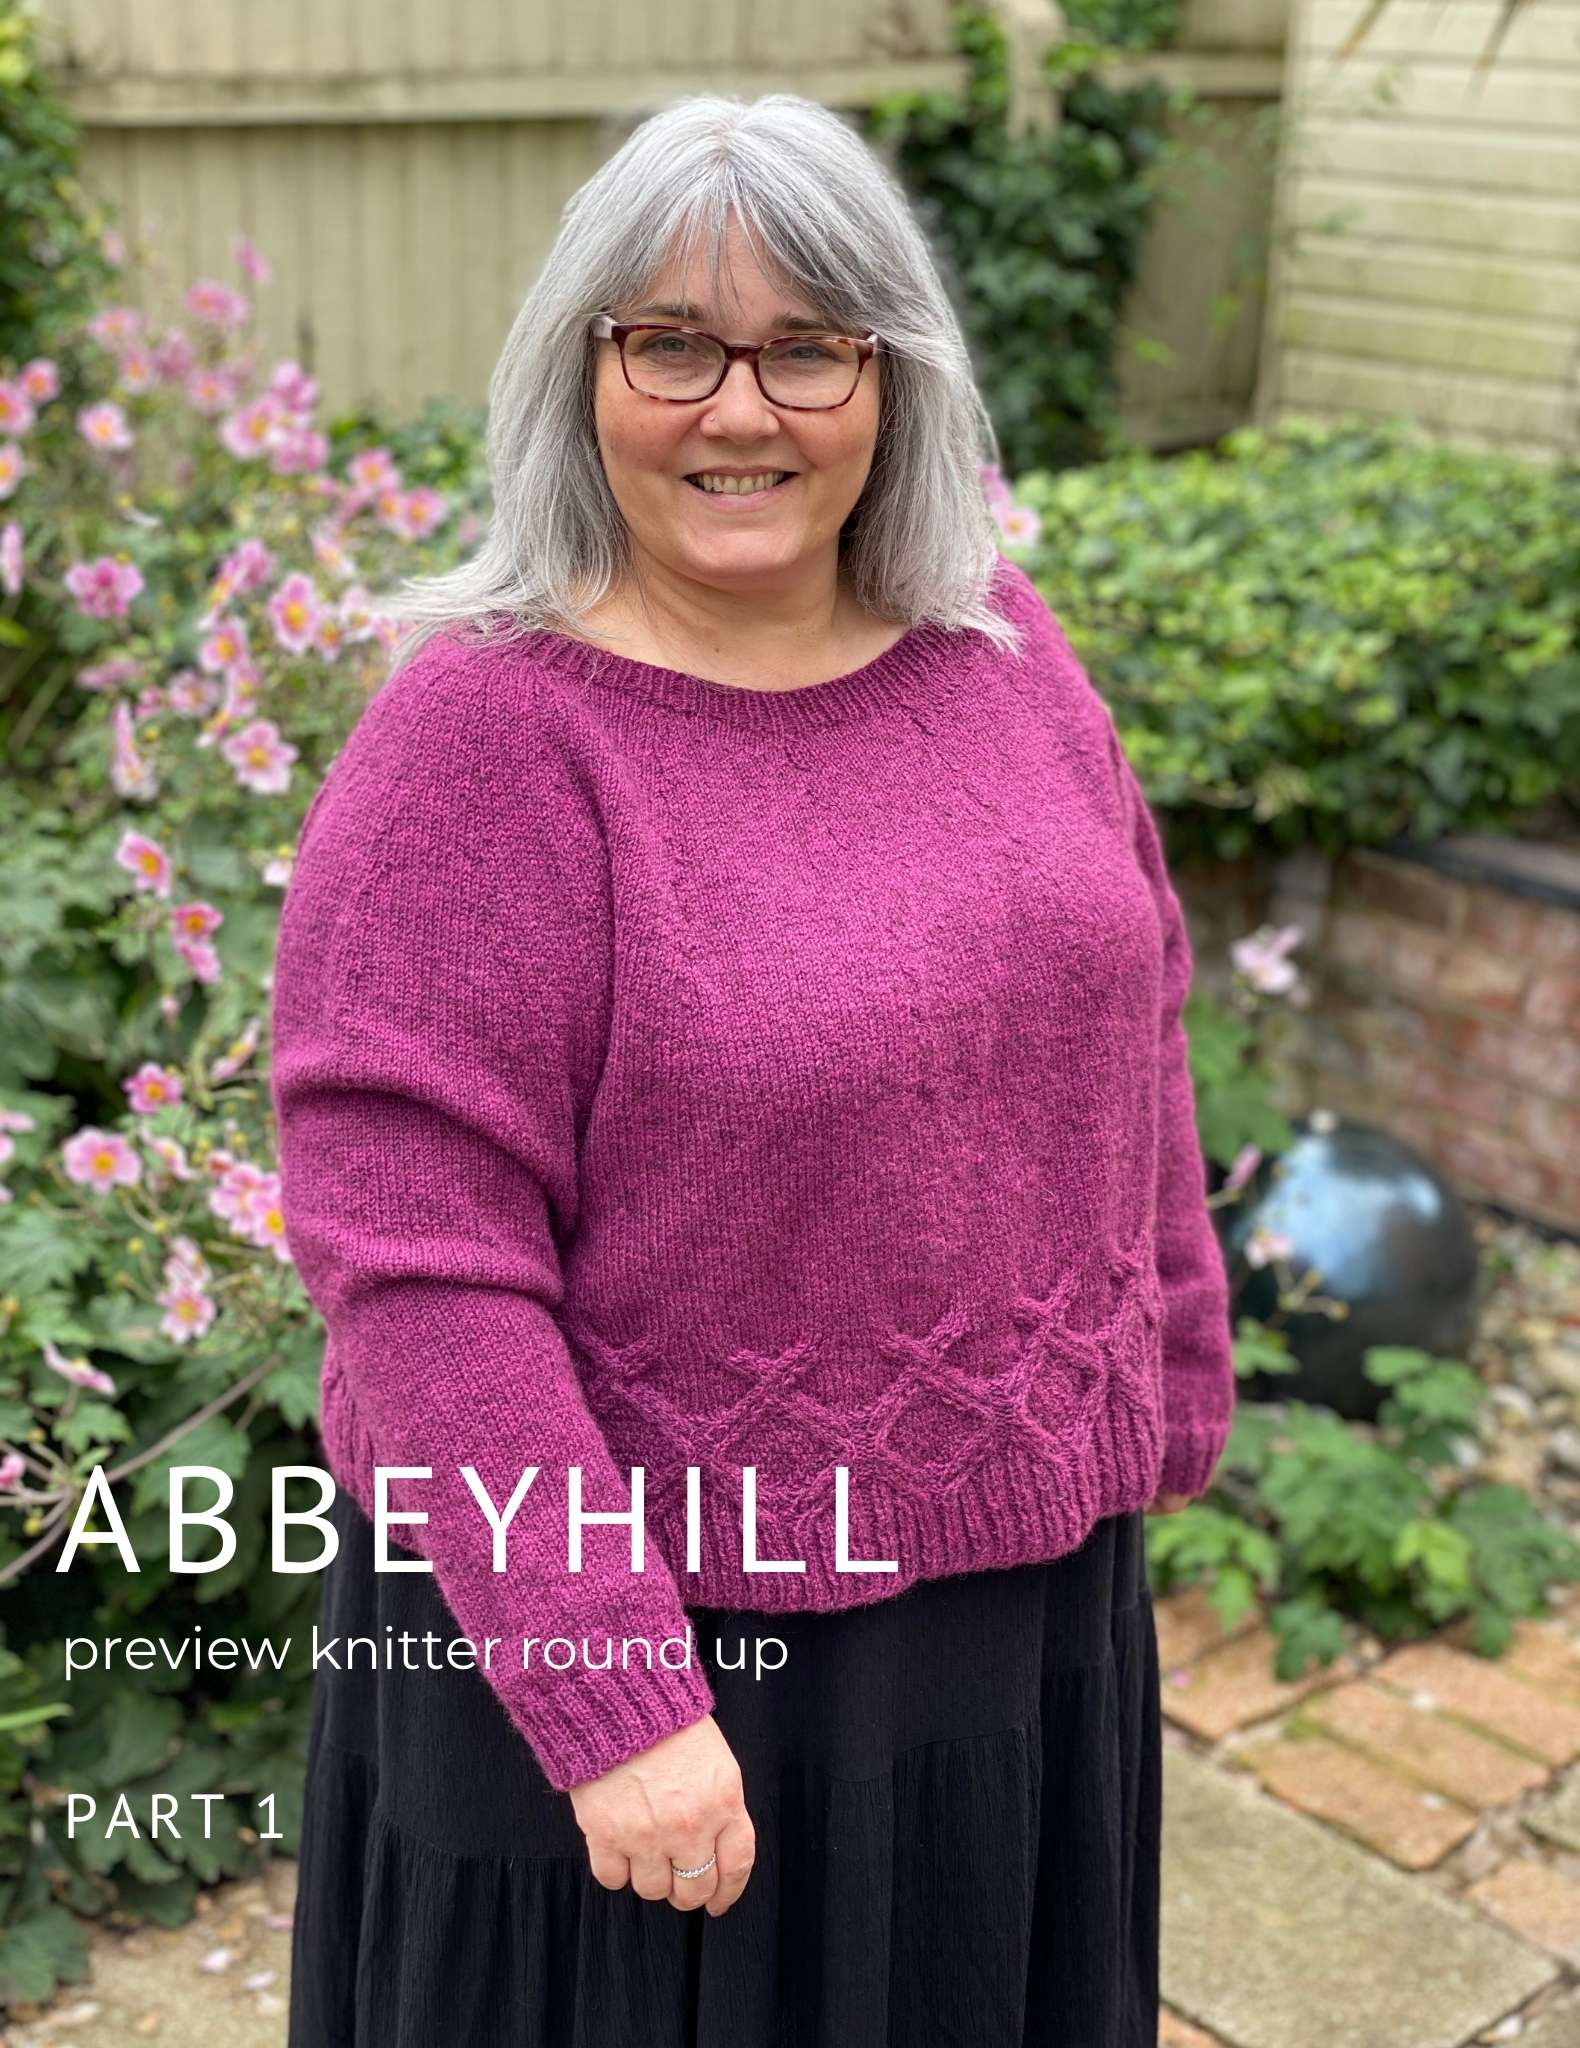 Abbeyhill: Preview knitter round up - Part 1